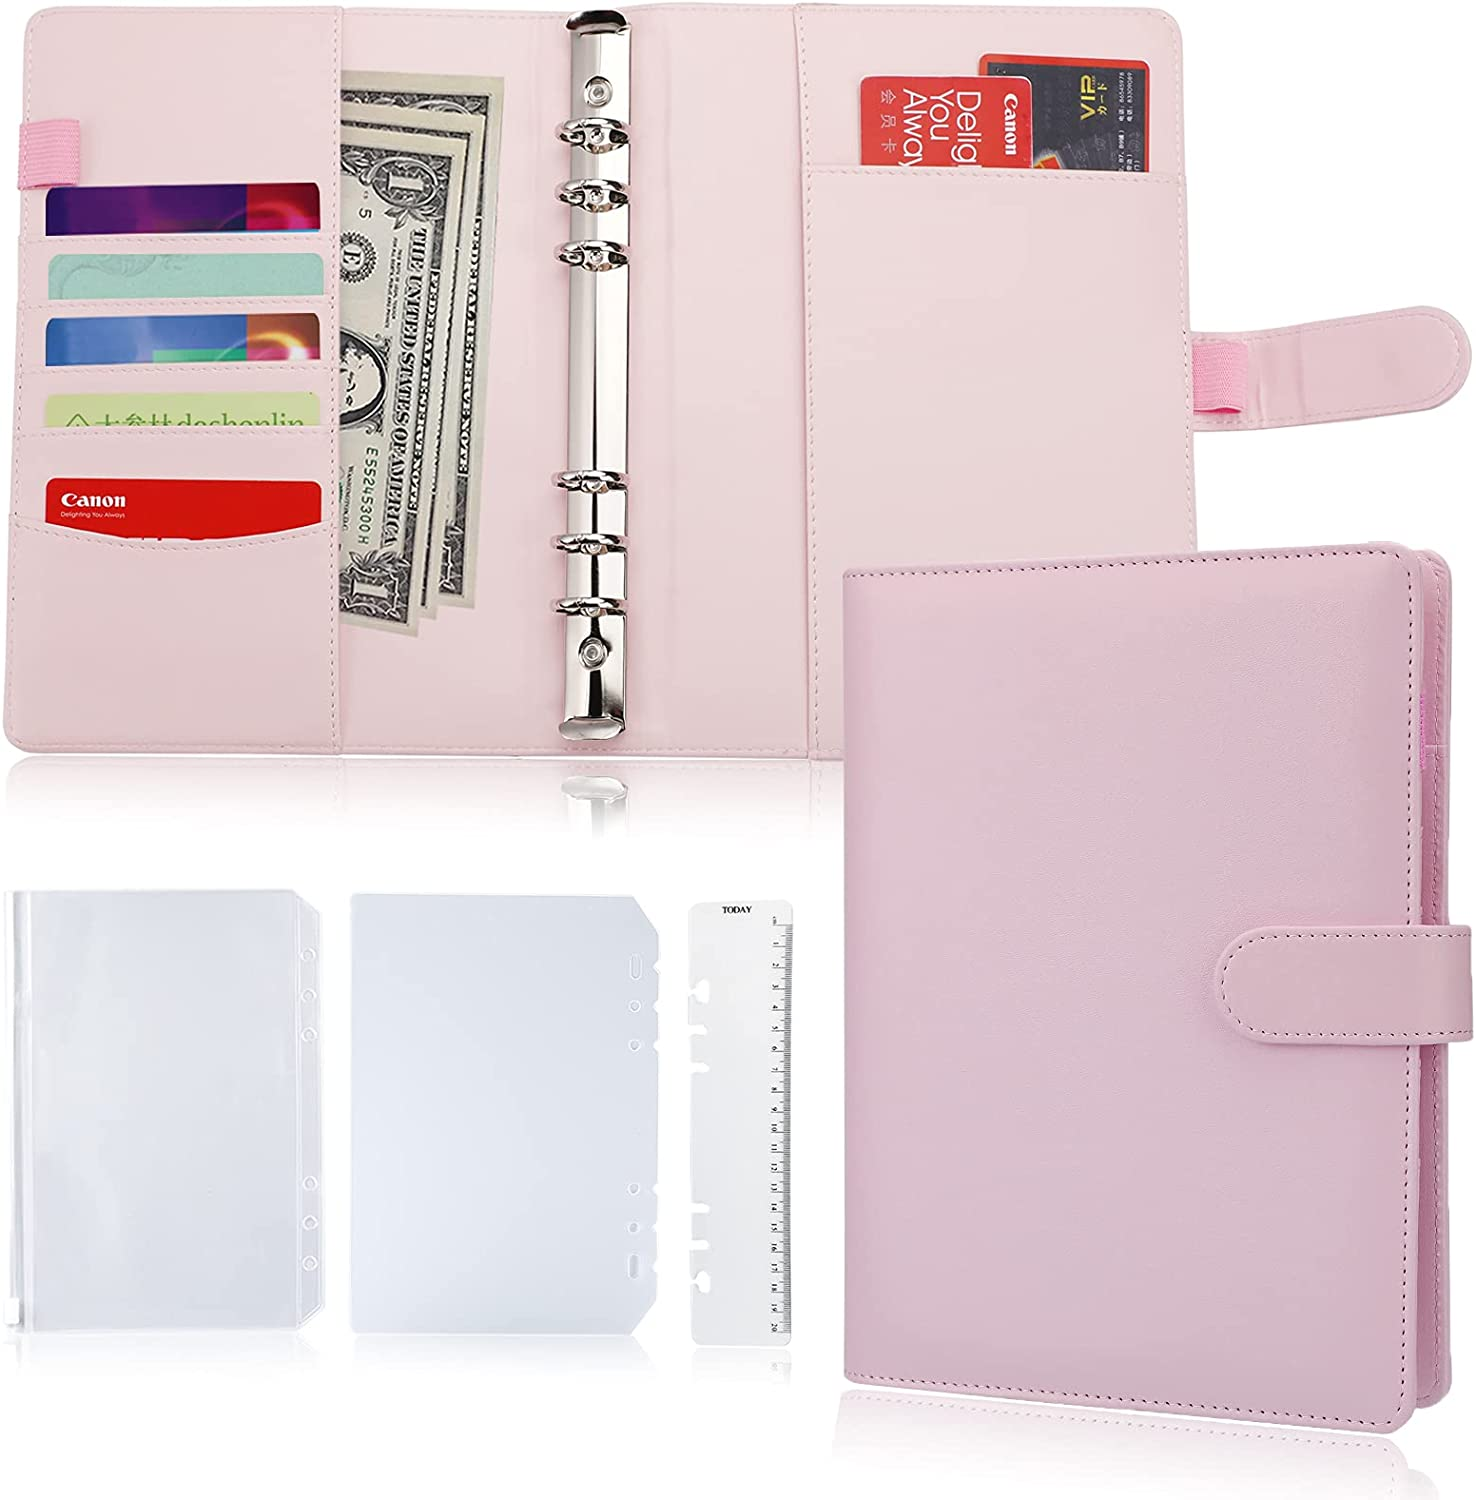 Personal Filofax Planner Dividers x 6 Peach Mint Pink Floral Bow Paper Clip